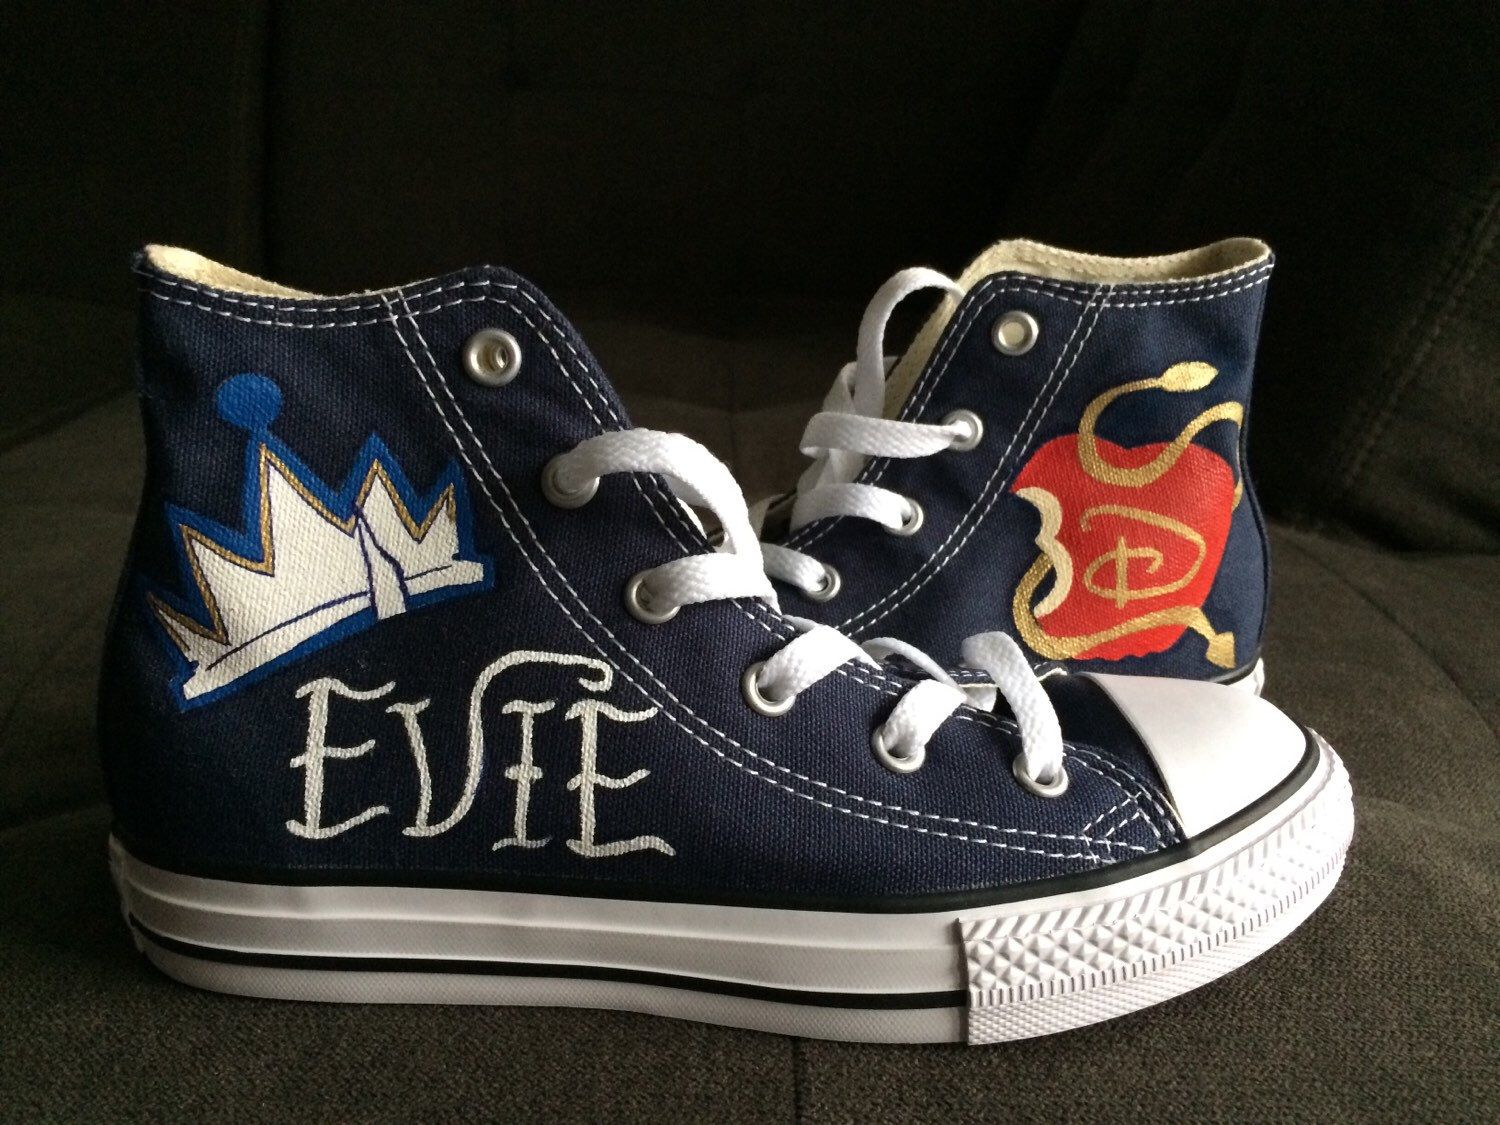 b8f7a2d23328 Evie Descendants shoes Etsy shop https   www.etsy.com listing